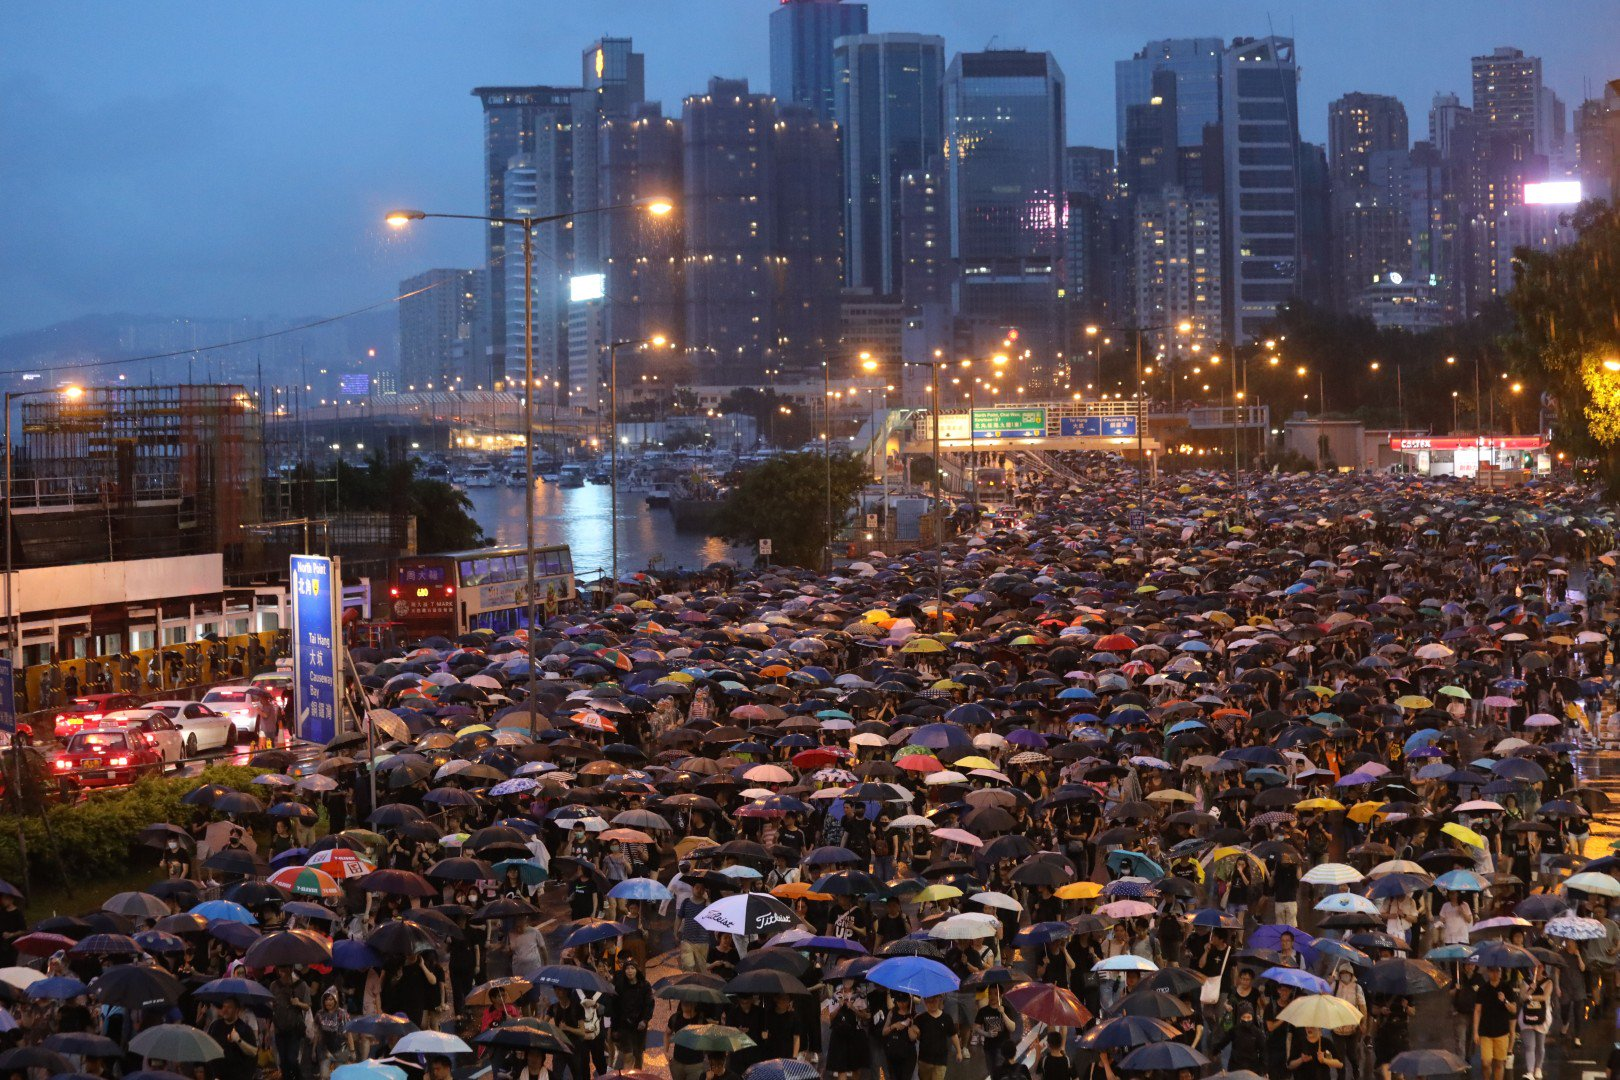 Eleventh weekend protest in Hong Kong peaceful and biggest since Jul 1